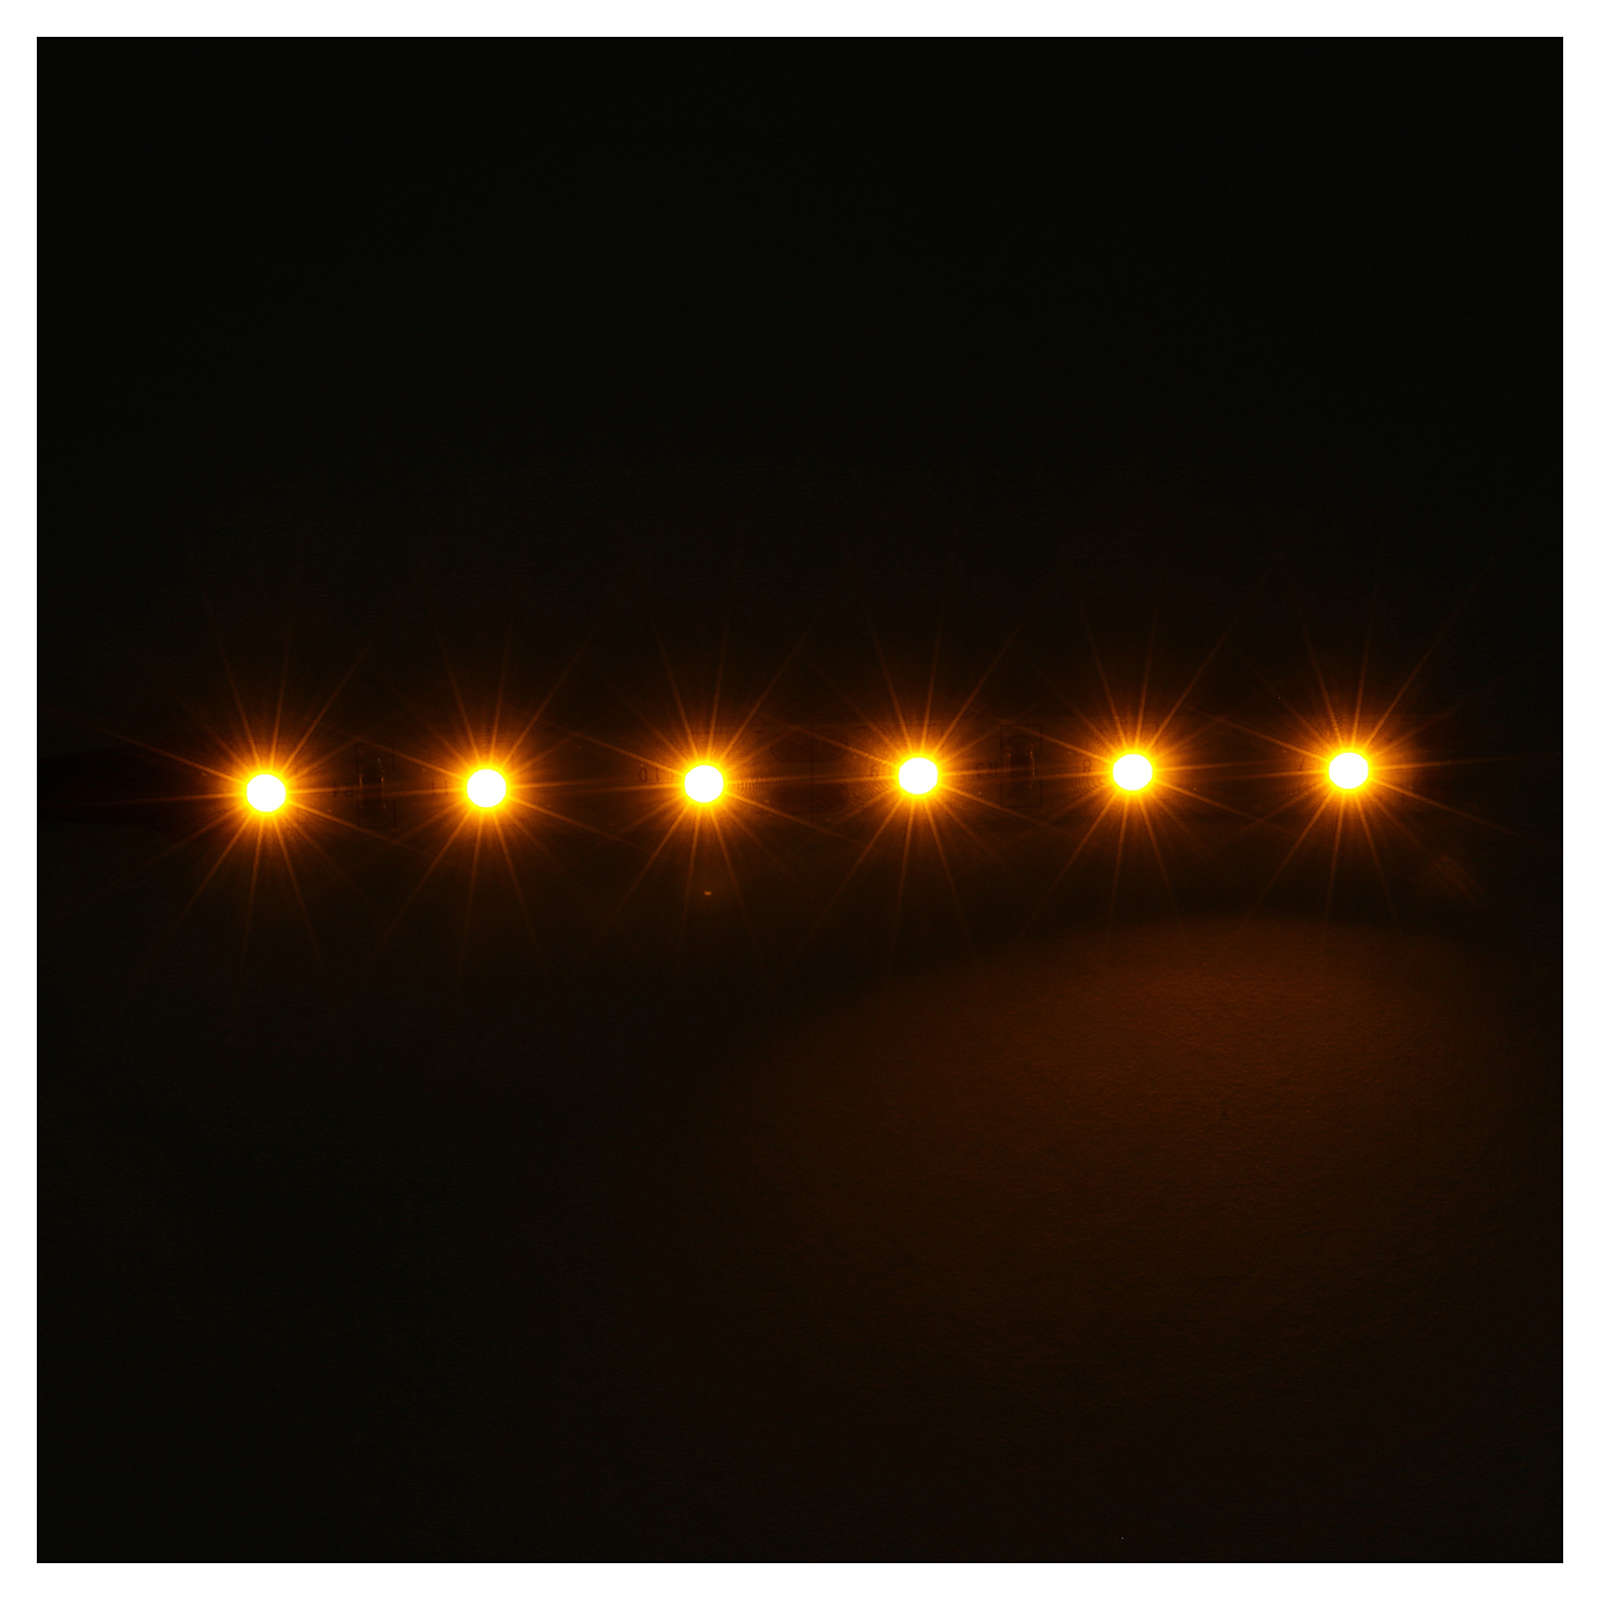 LED strip with 6 lights 0,8x8cm, yellow for Frisalight 4